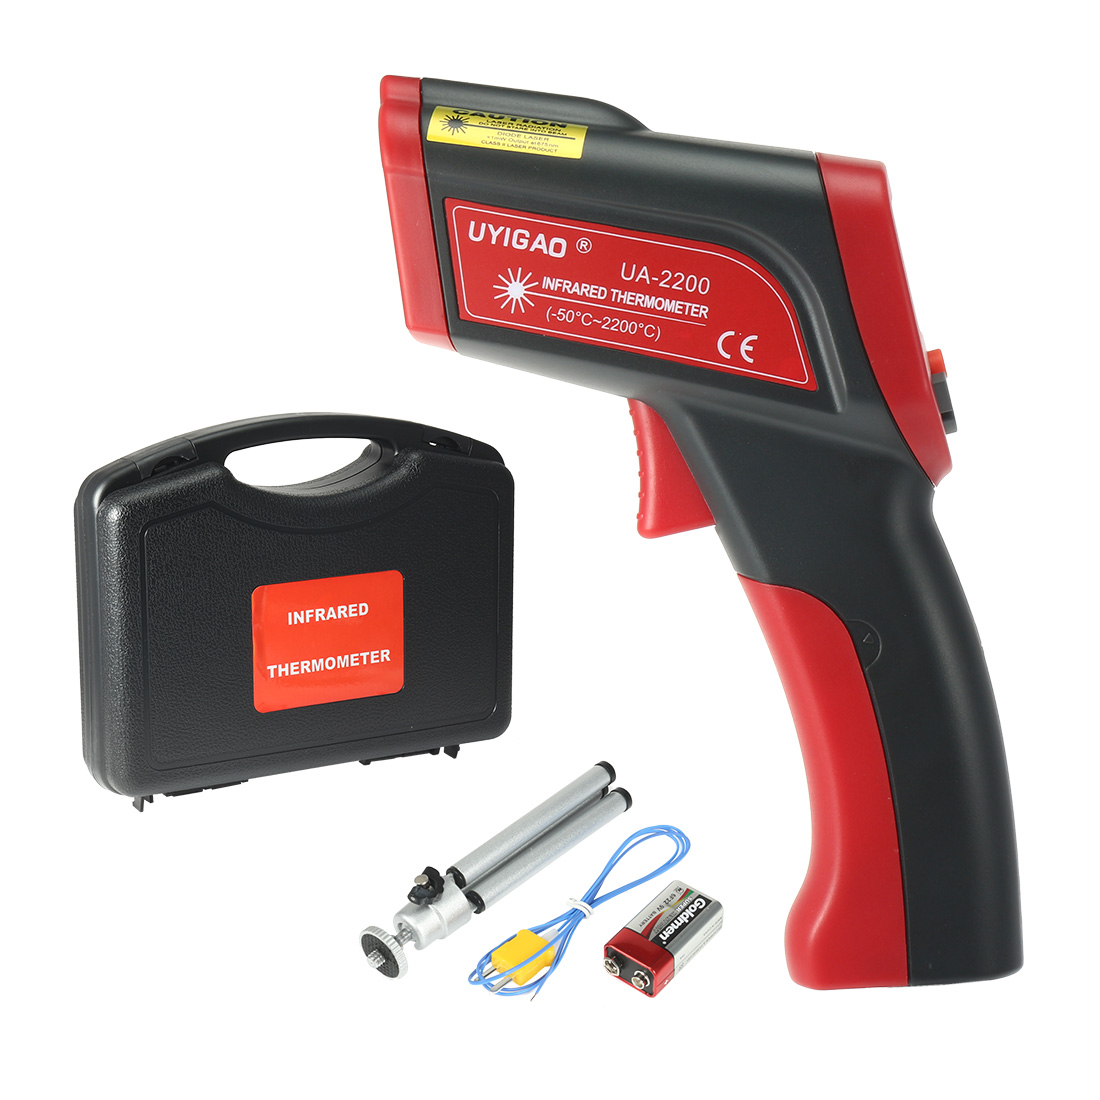 Non-Contact IR Temperature Test Digital Infrared Thermometer -50C - +2200C